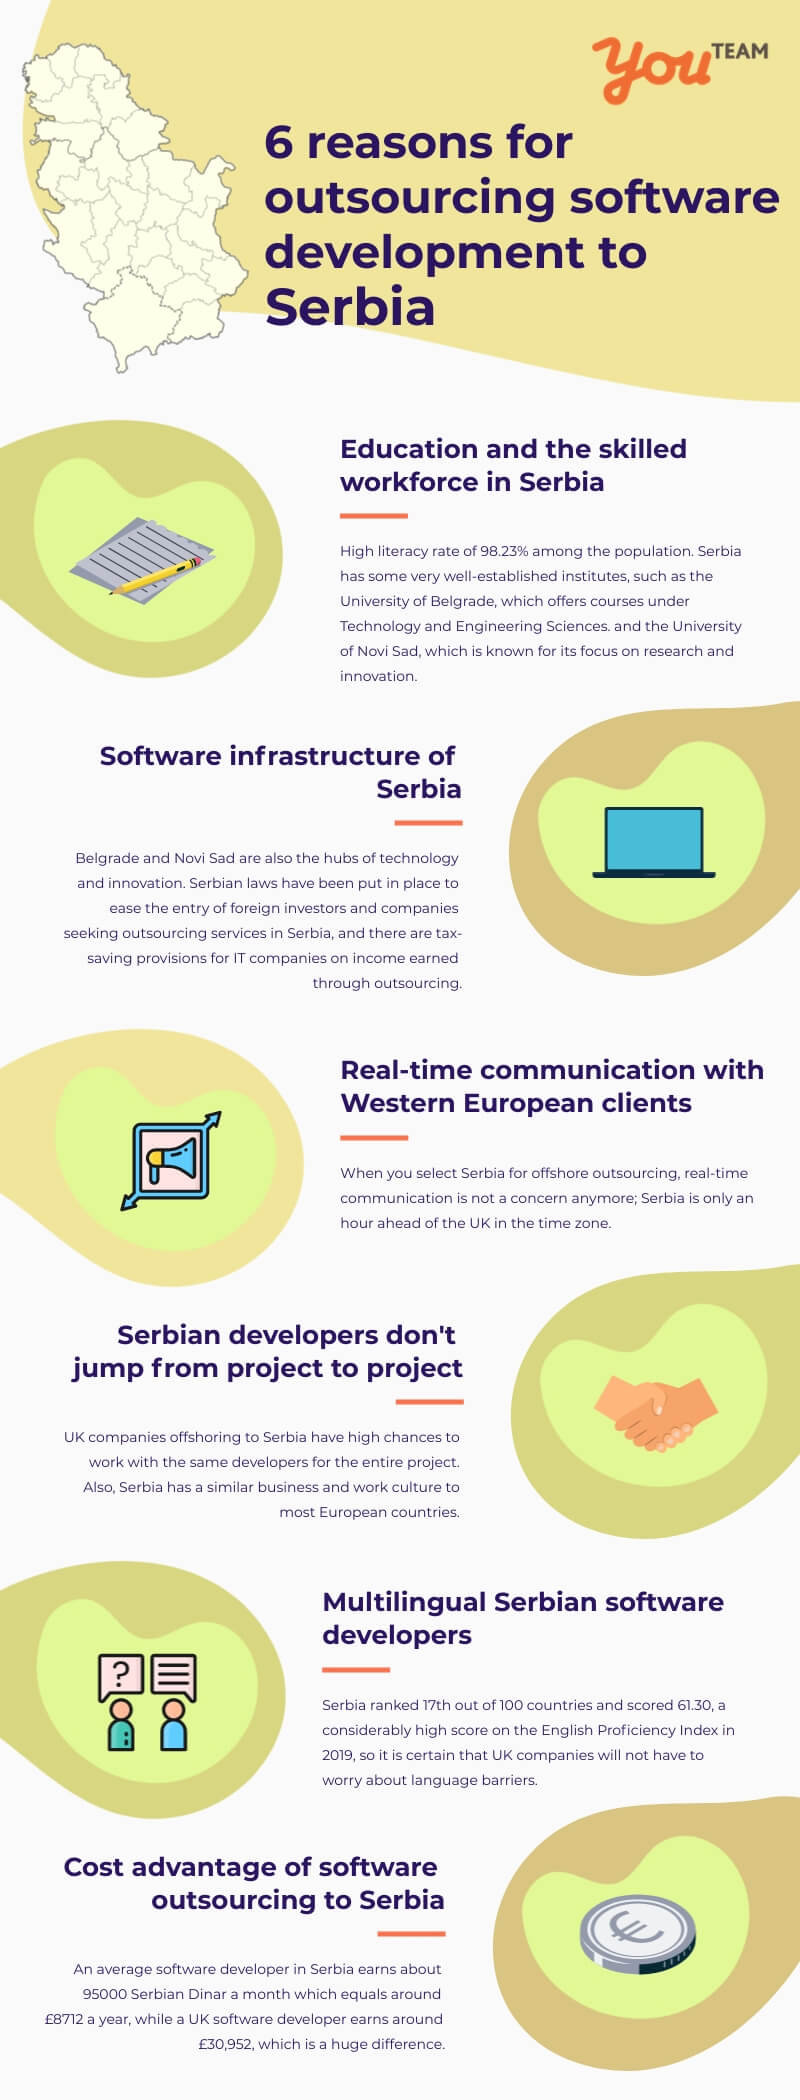 Hire developers from Serbia